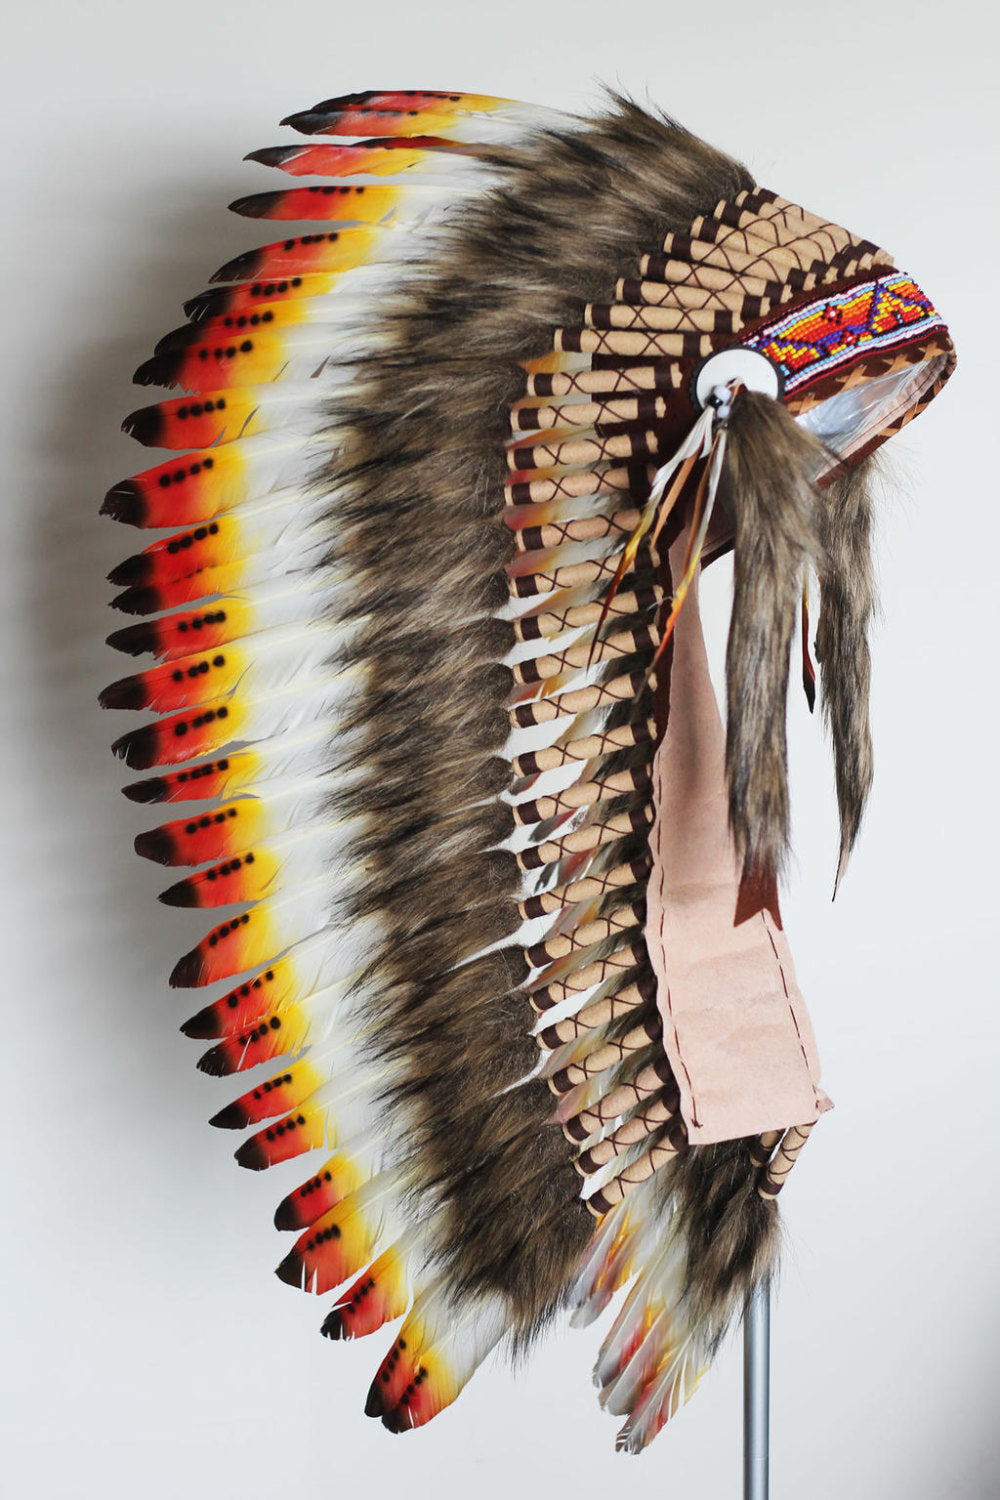 price reduced y31 medium indian three colors feather headdress 36 inch long native american style